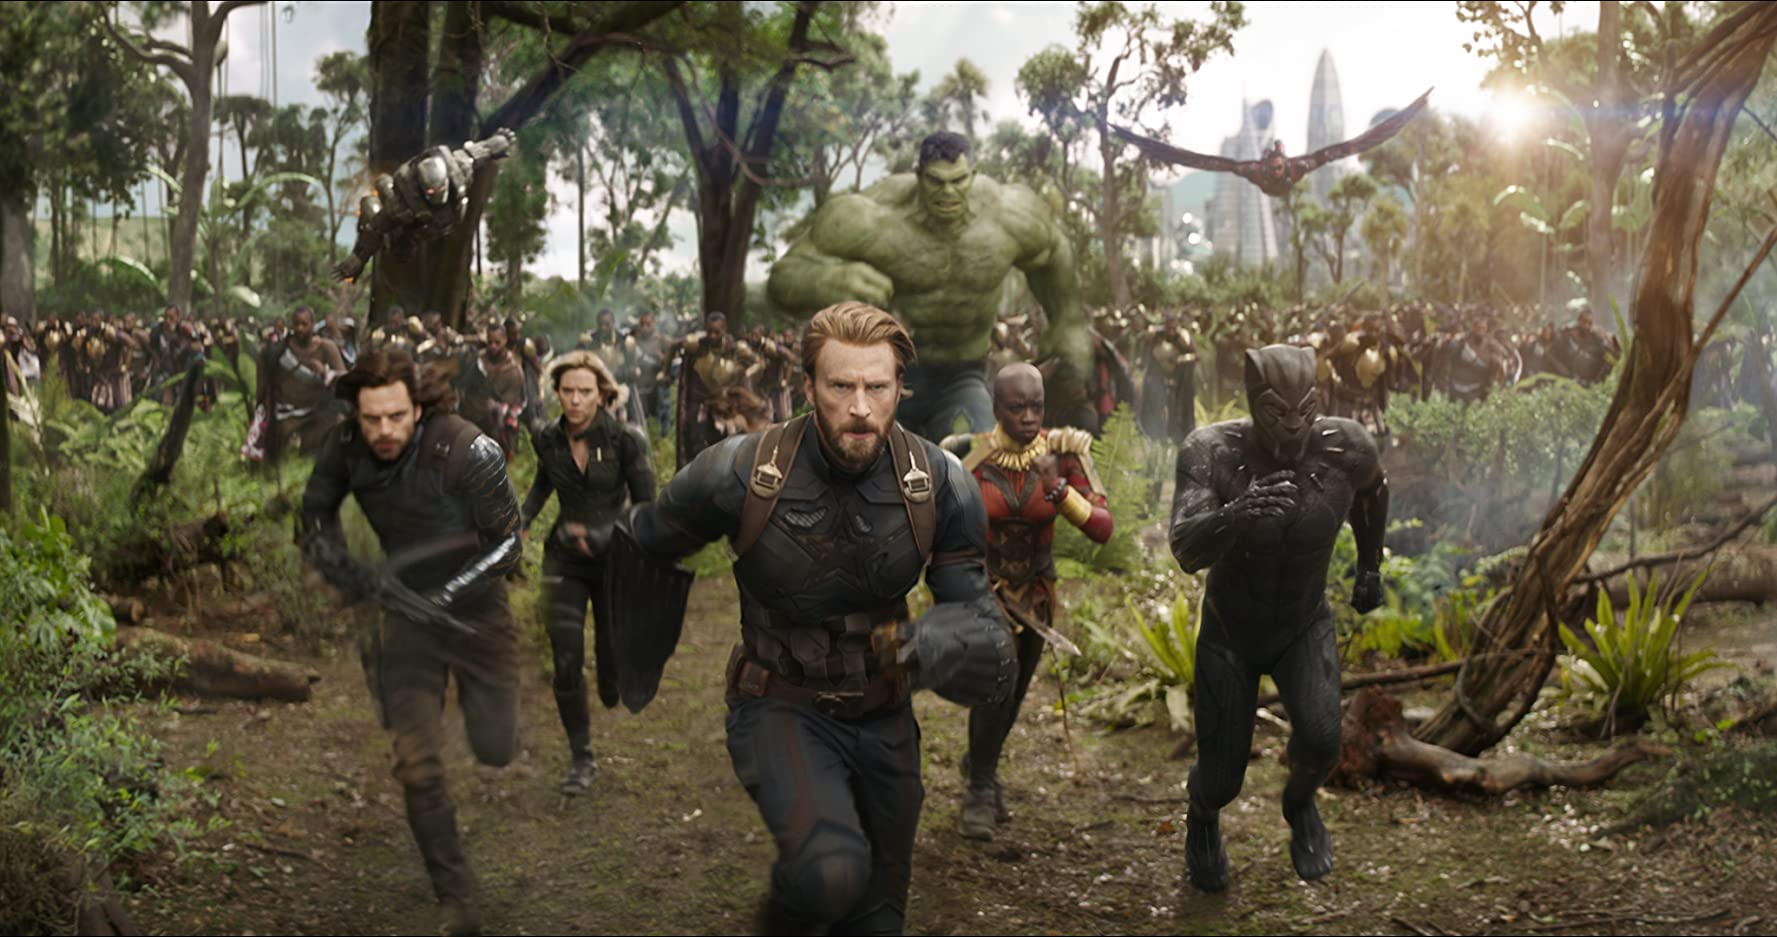 Movie Review - Avengers: Infinity War, a love letter to the fans